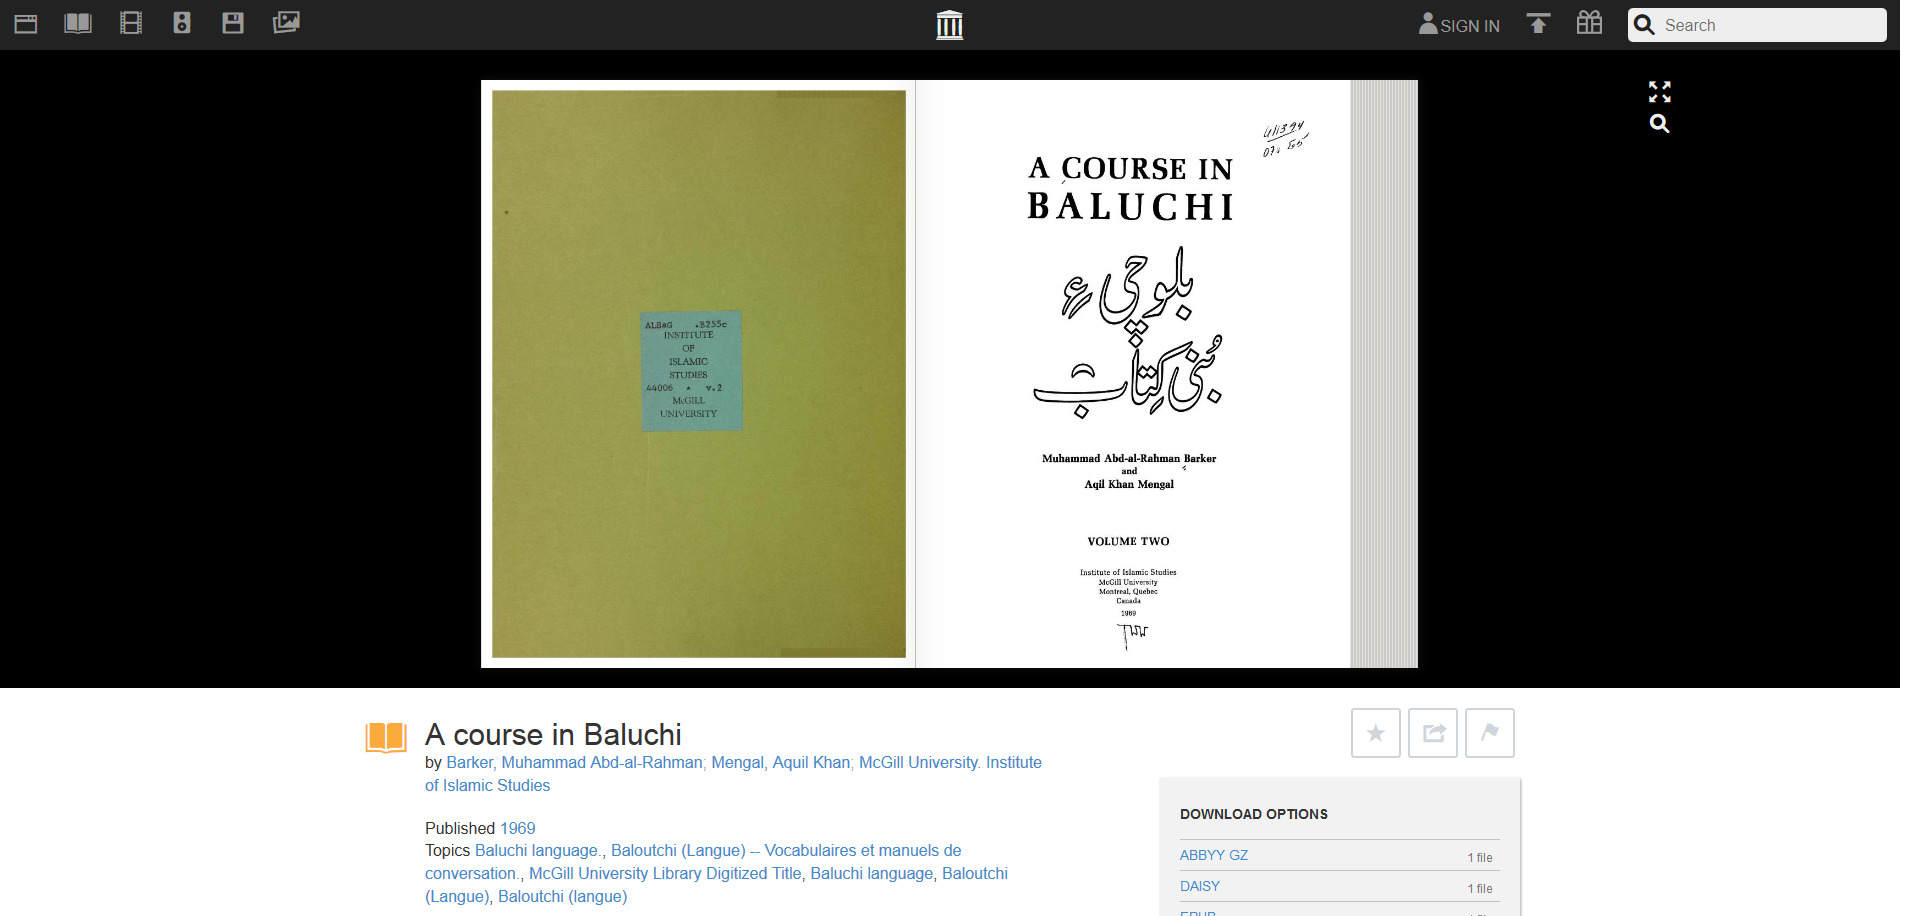 A course in Baluchi - Barker, Muhammad Abd-al-Rahman - Free Download & Streaming - Internet Archive